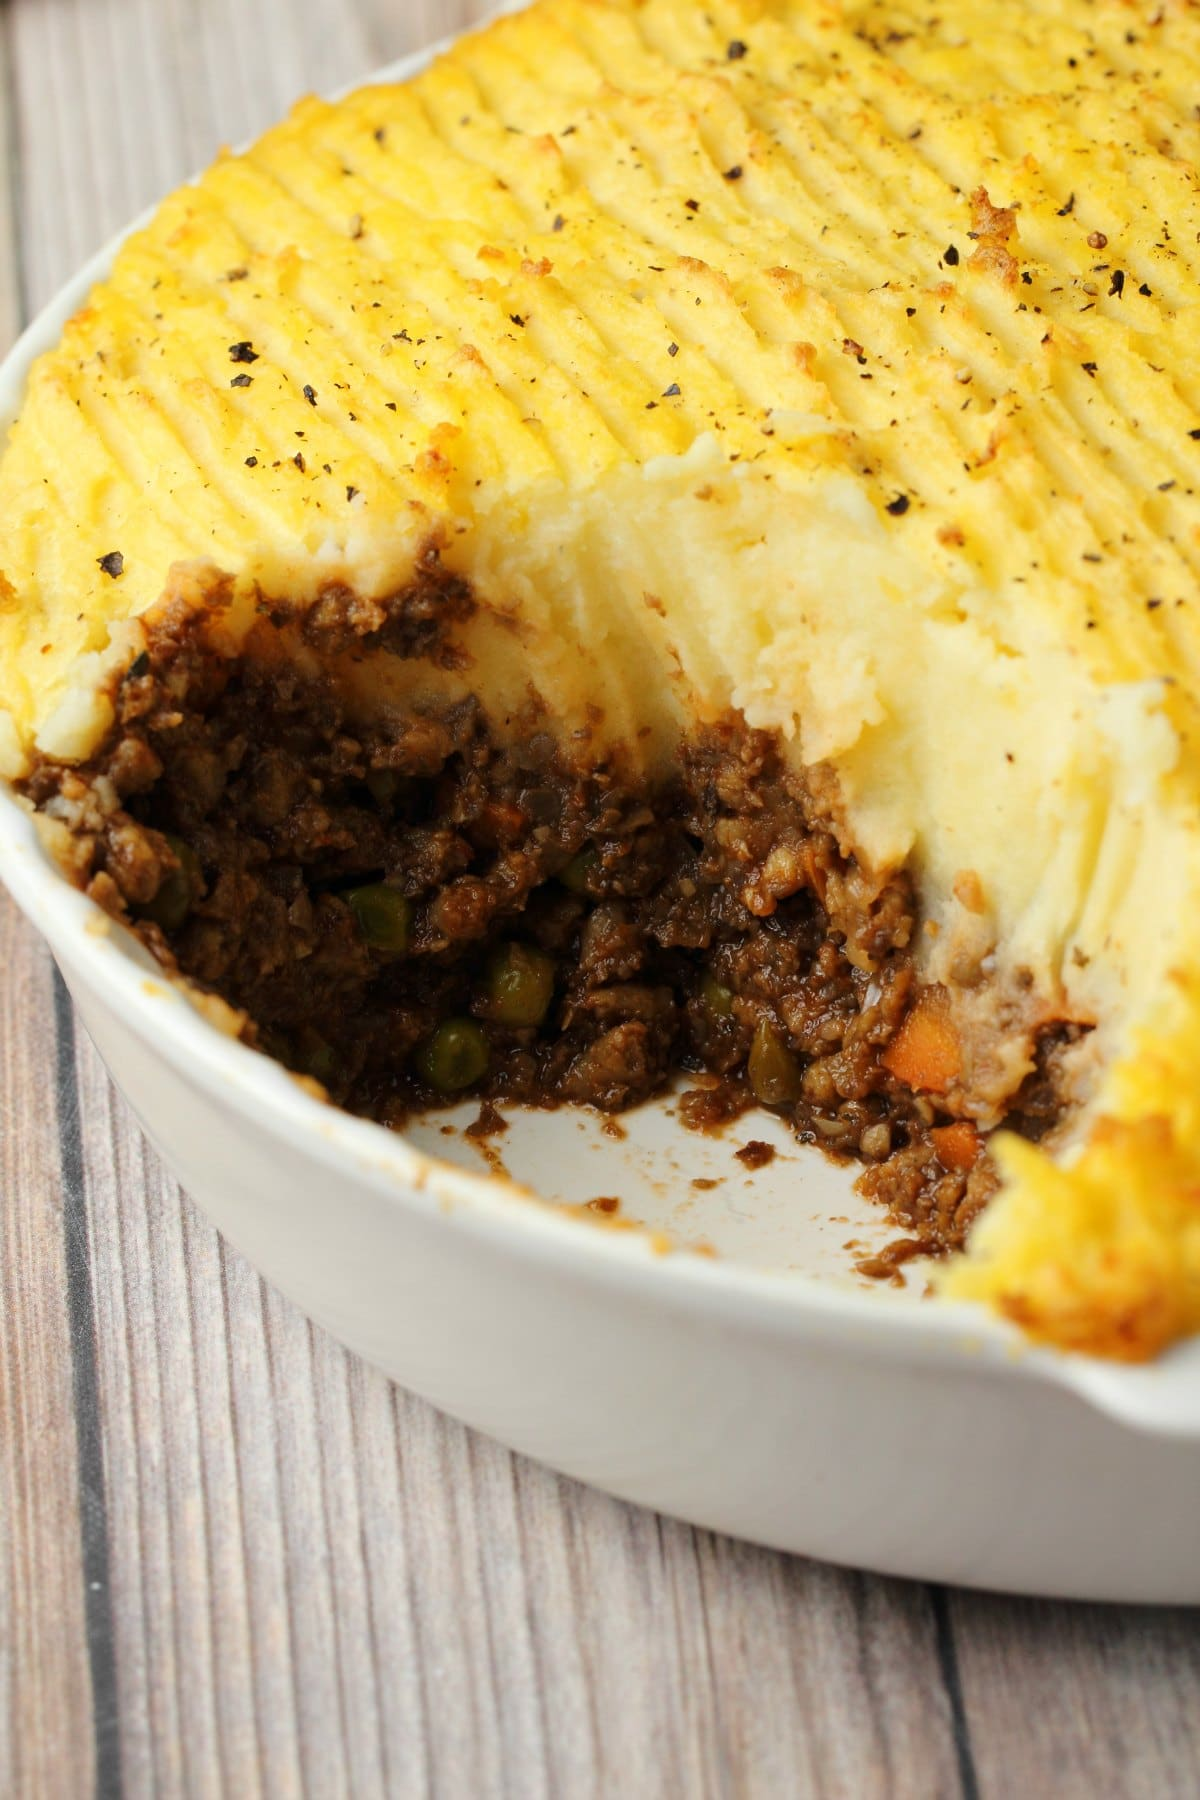 Vegan Shepherd's Pie in a white pie dish, one slice taken out to show the center.